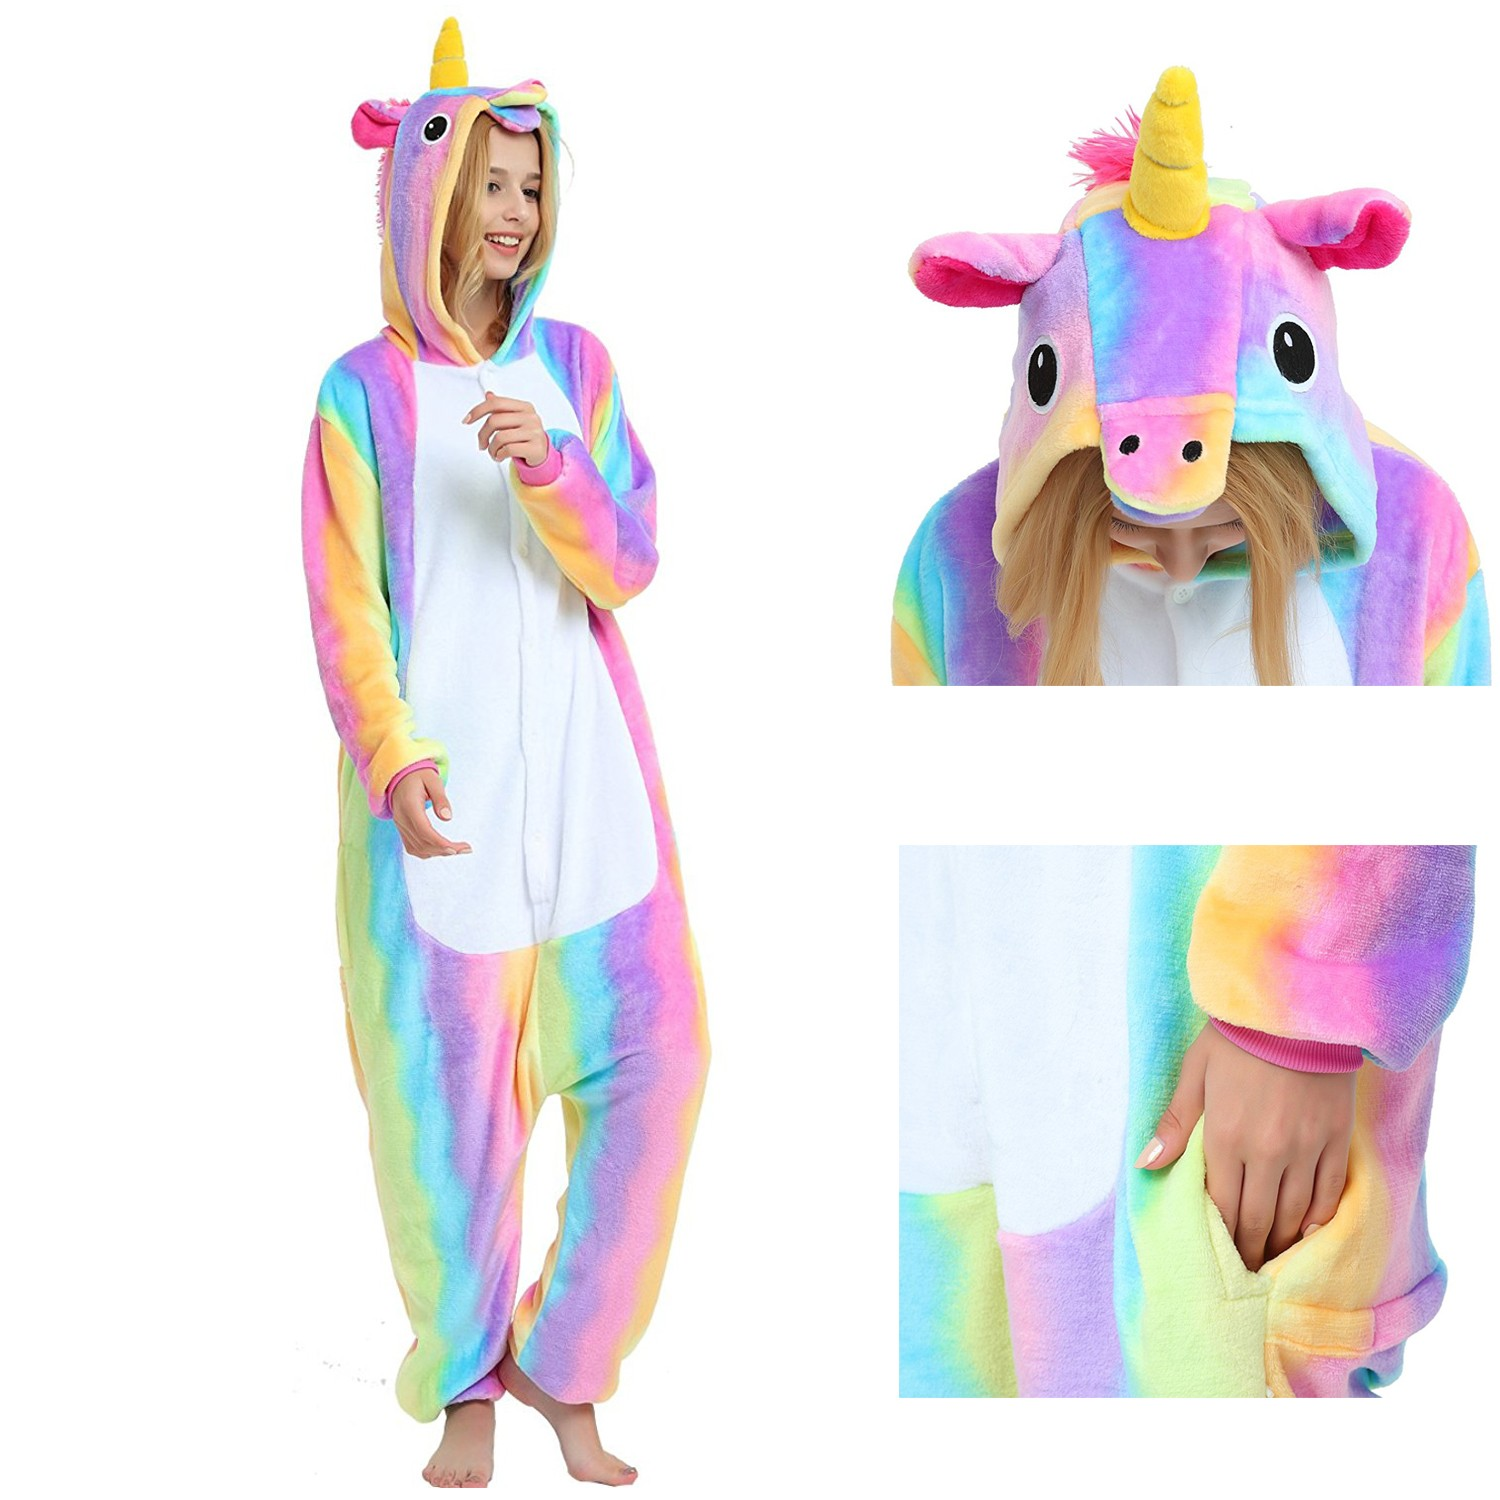 a06727d505e8 Rainbow Unicorn Onesie Unisex Women   Men Animal Pajamas Kigurumi Halloween  Costumes